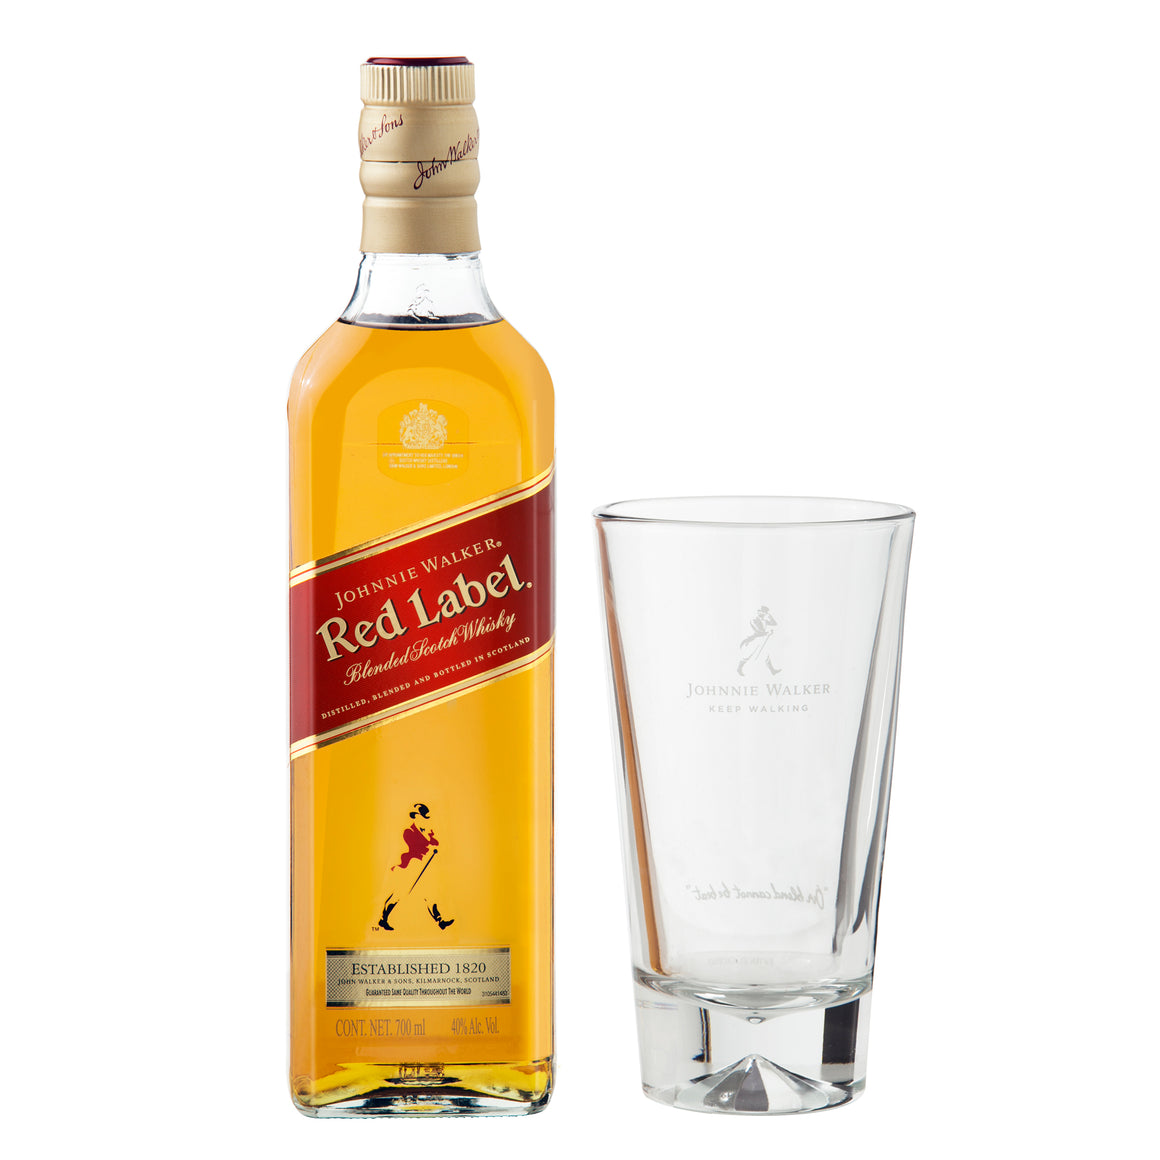 Whisky Johnnie Walker Etiqueta Roja 750 ml + Highball